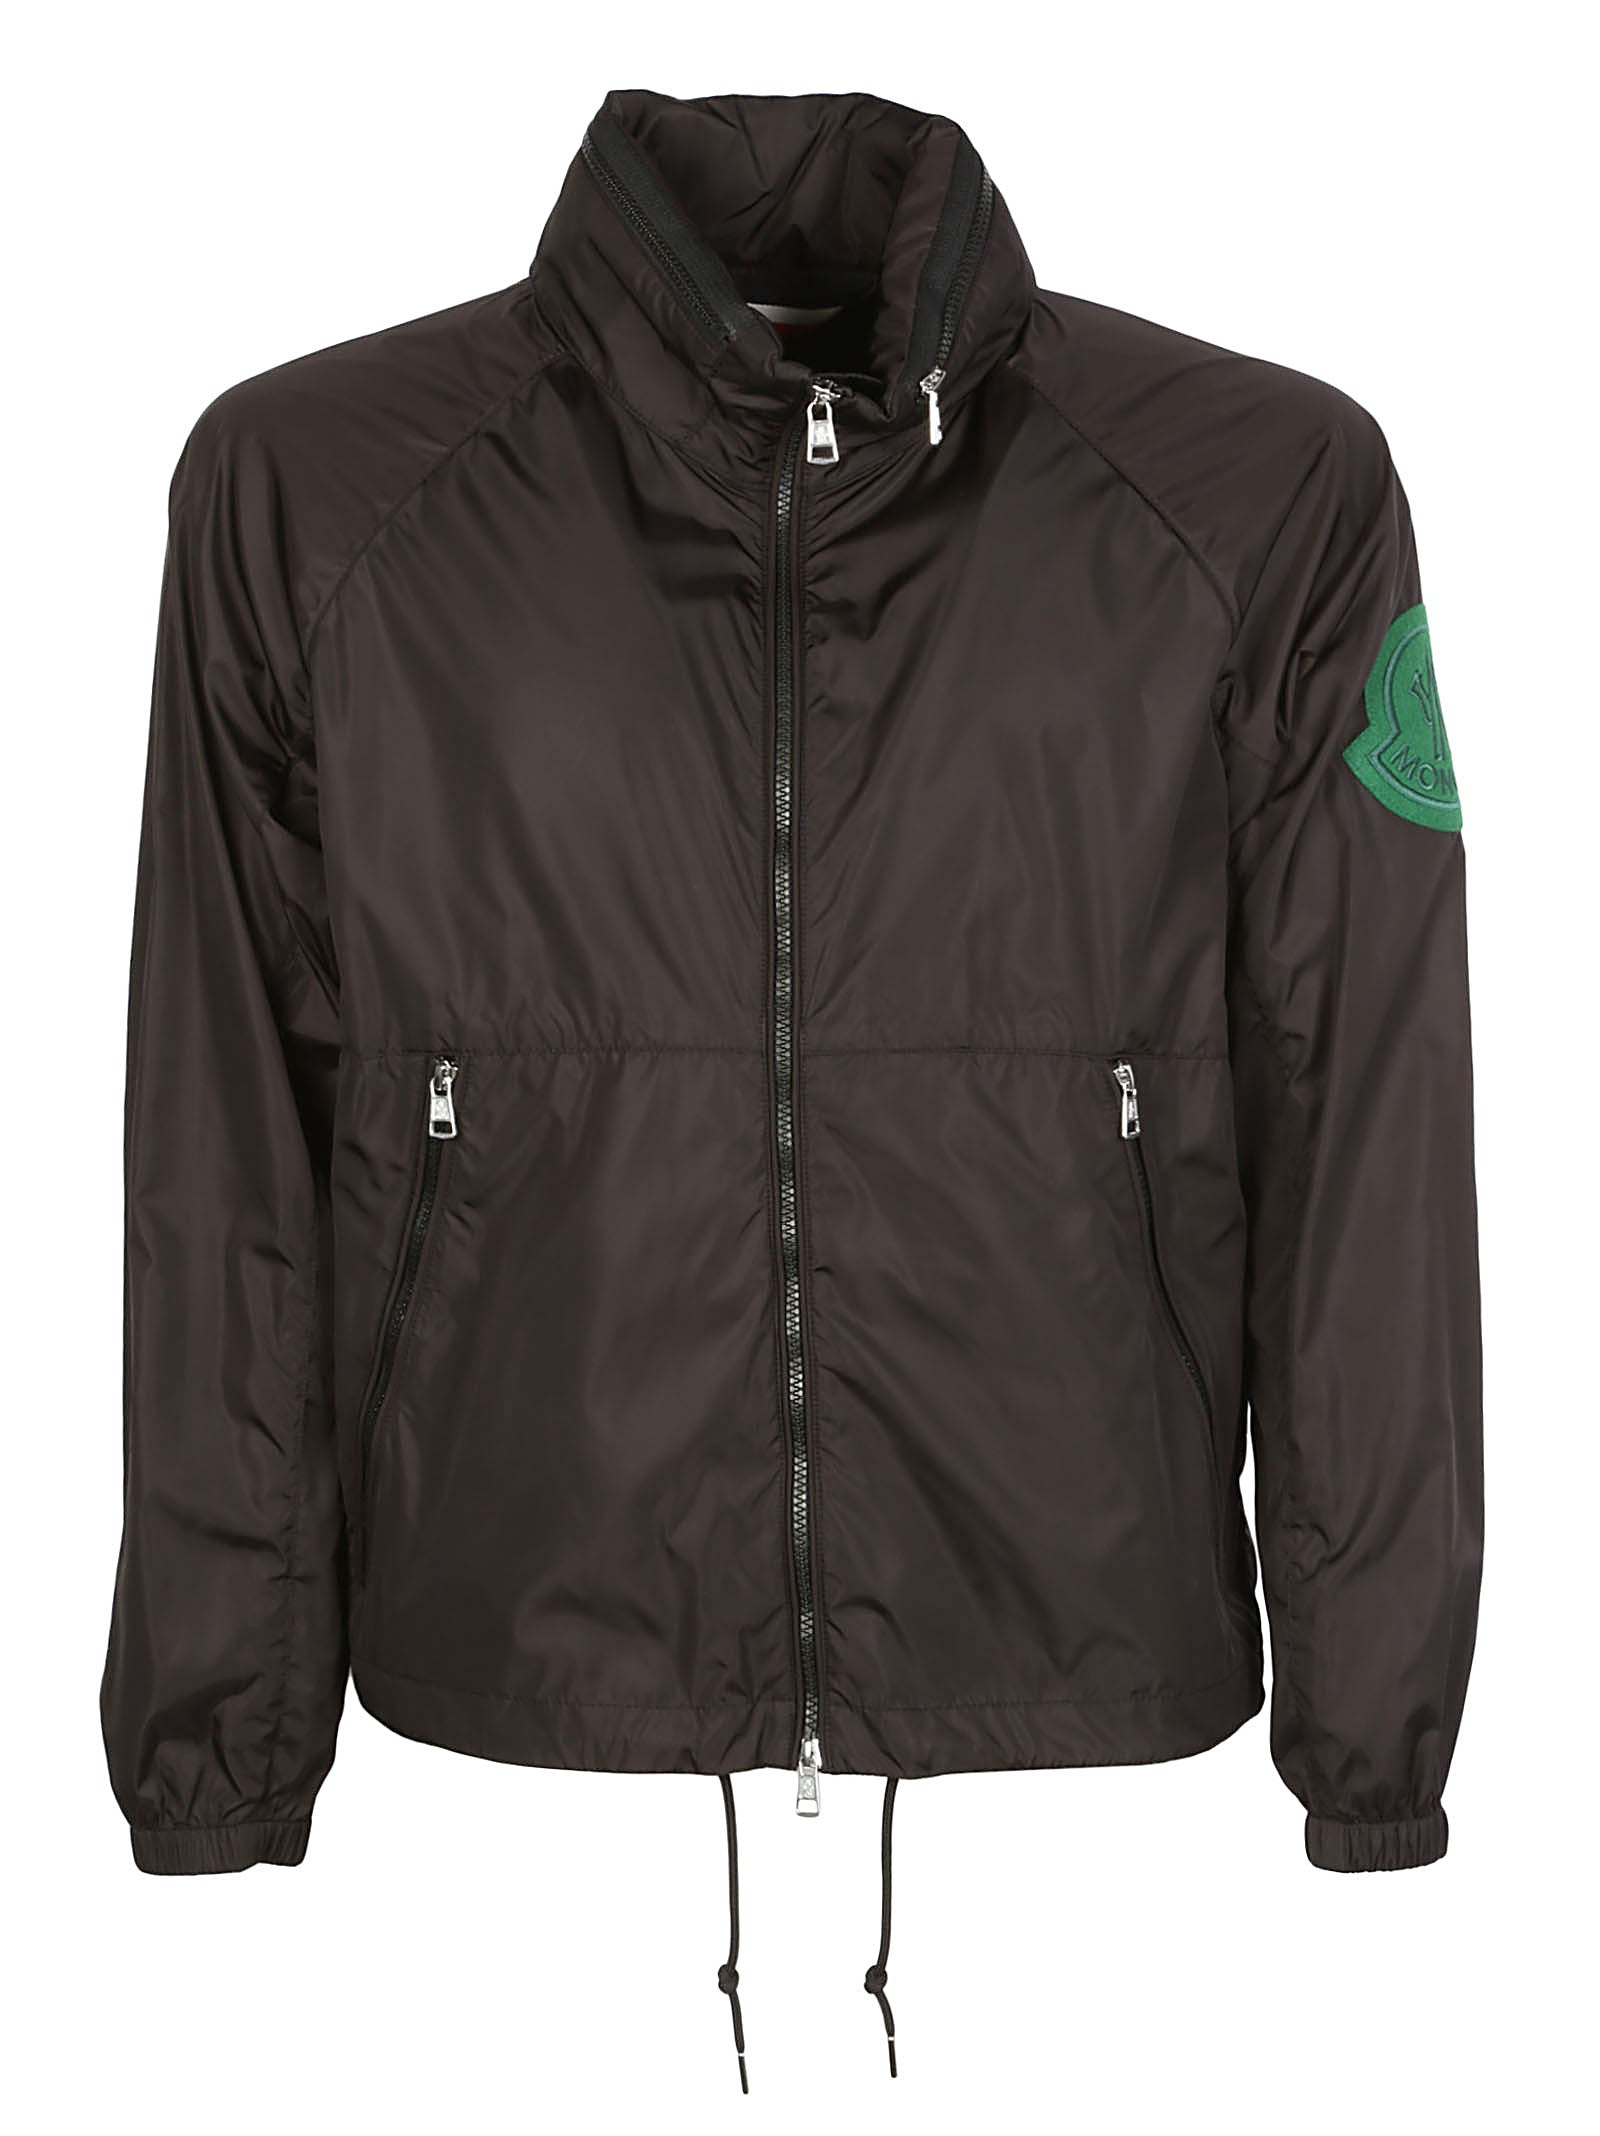 Moncler Genius Jackets MONCLER GENIUS 1952 OCTAGON ZIPPED JACKET